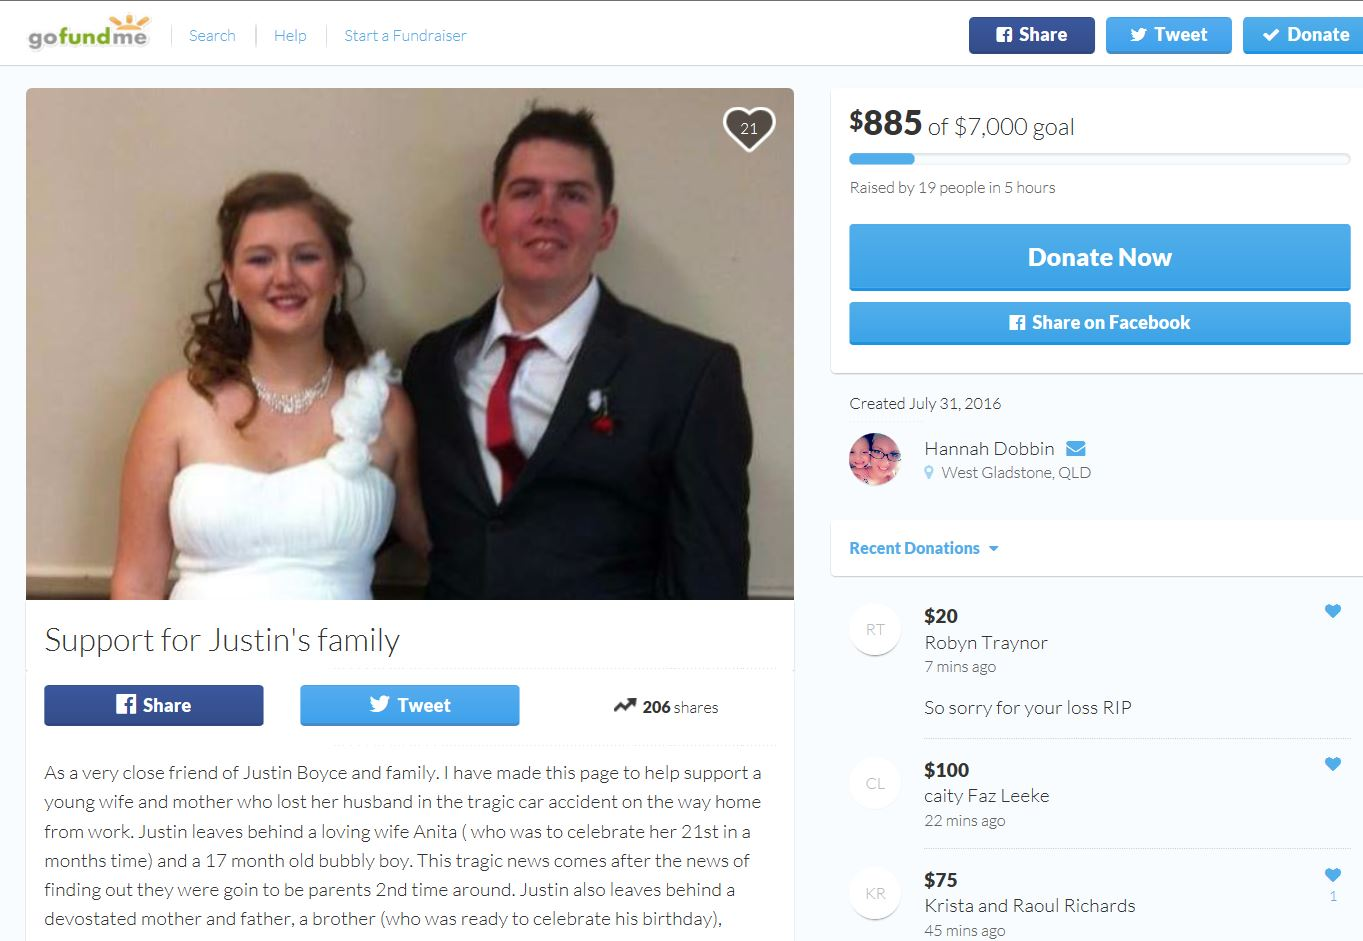 A Go Fund Me page has been made to raise money for Justin Boyce's family.